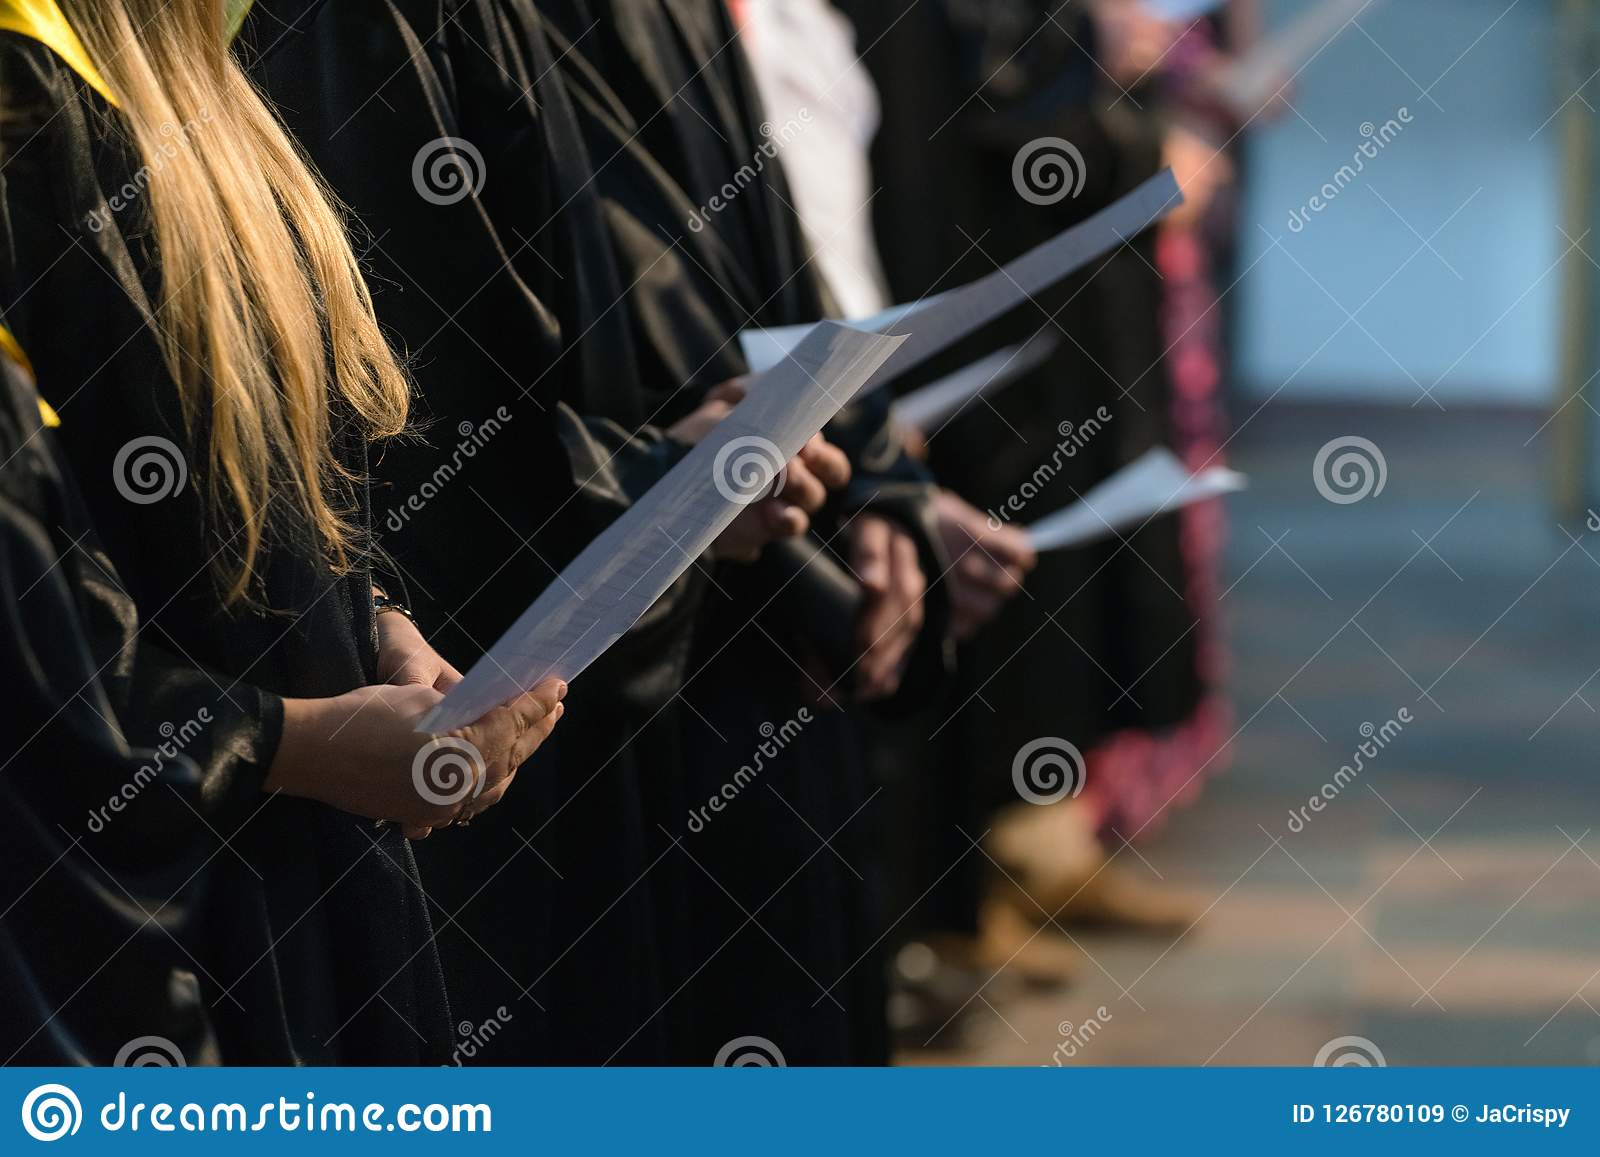 Choir singers holding musical score and singing on student graduation day in university, college diploma commencement